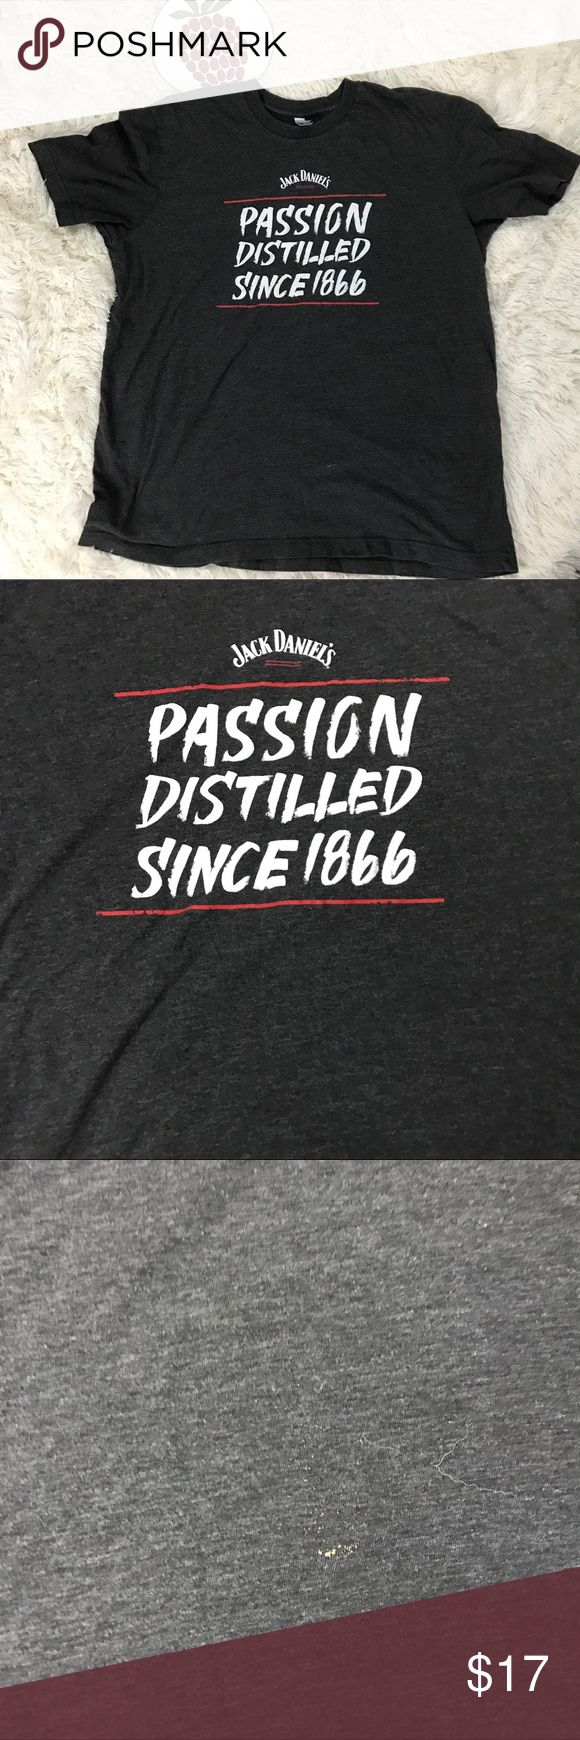 """Jack Daniels passion Crew Neck t Shirt Size XL *small spot on bottom, see pictures Measurements  Length 27"""" Armpit to armpit 23 1/2"""" Inventory H21 Shirts Tees - Short Sleeve"""